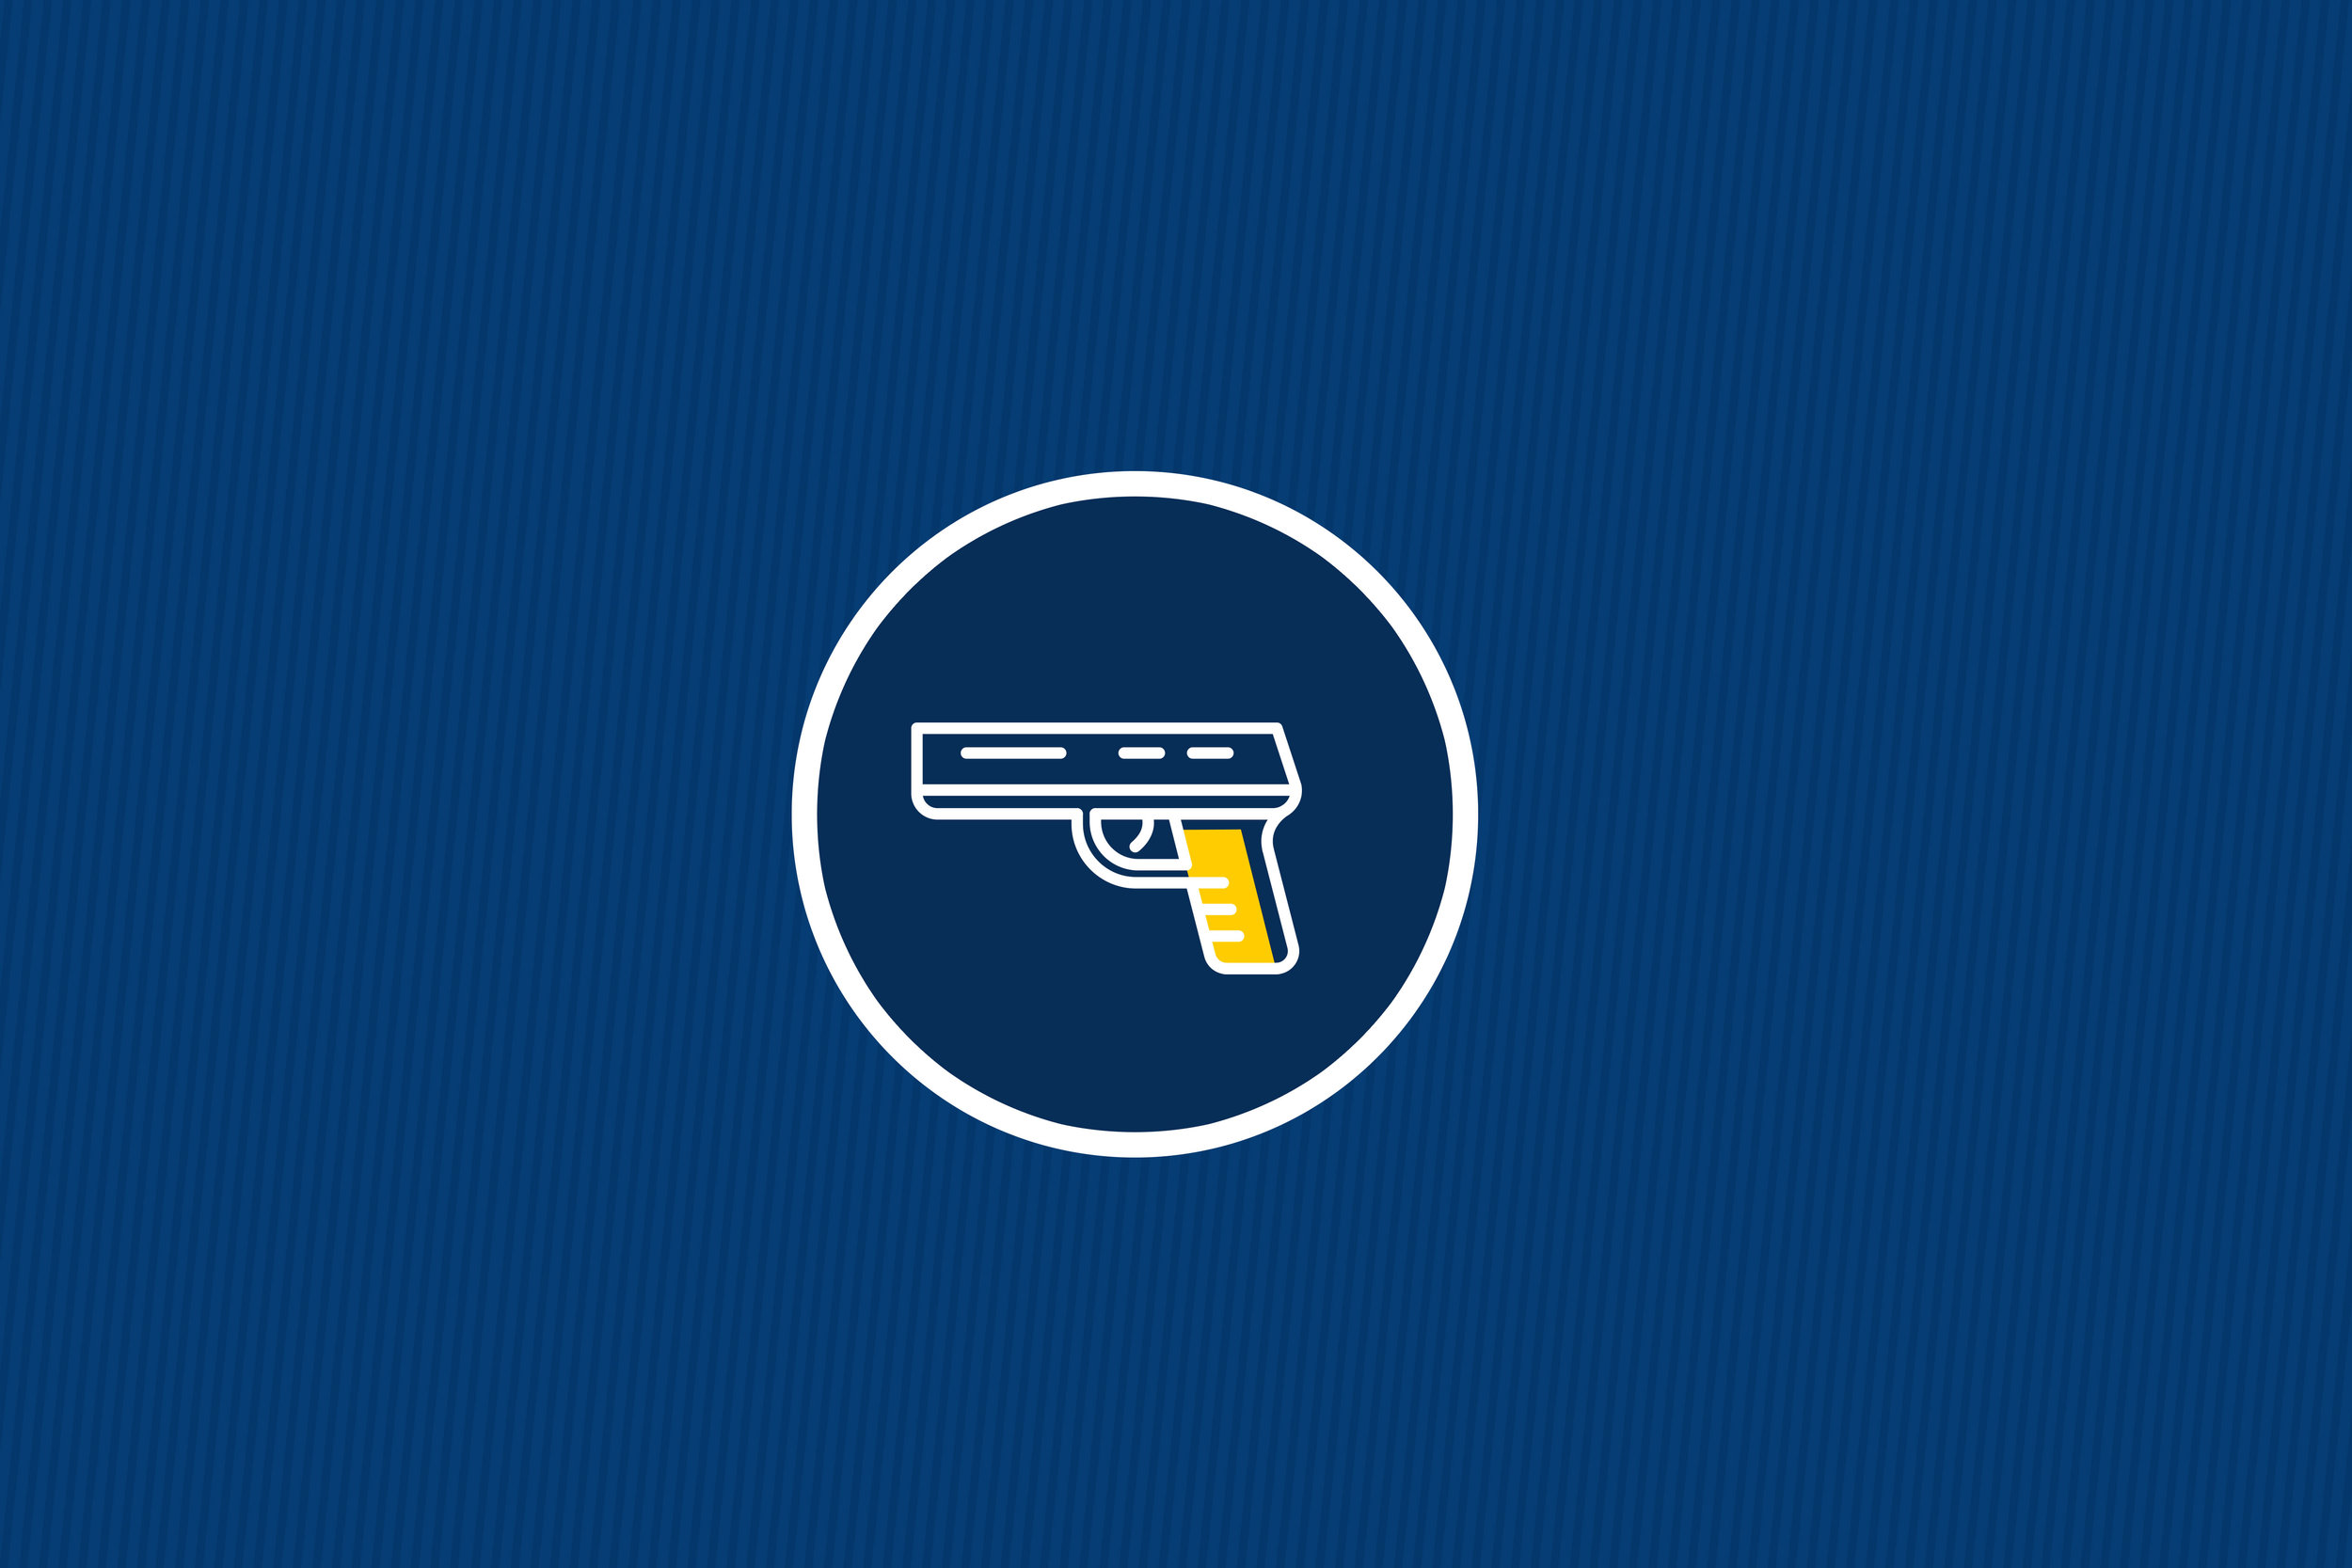 GUN VIOLENCE ISSUE - Decrease the need for prosecutions and incarceration by decreasing incidences of violence in the community.